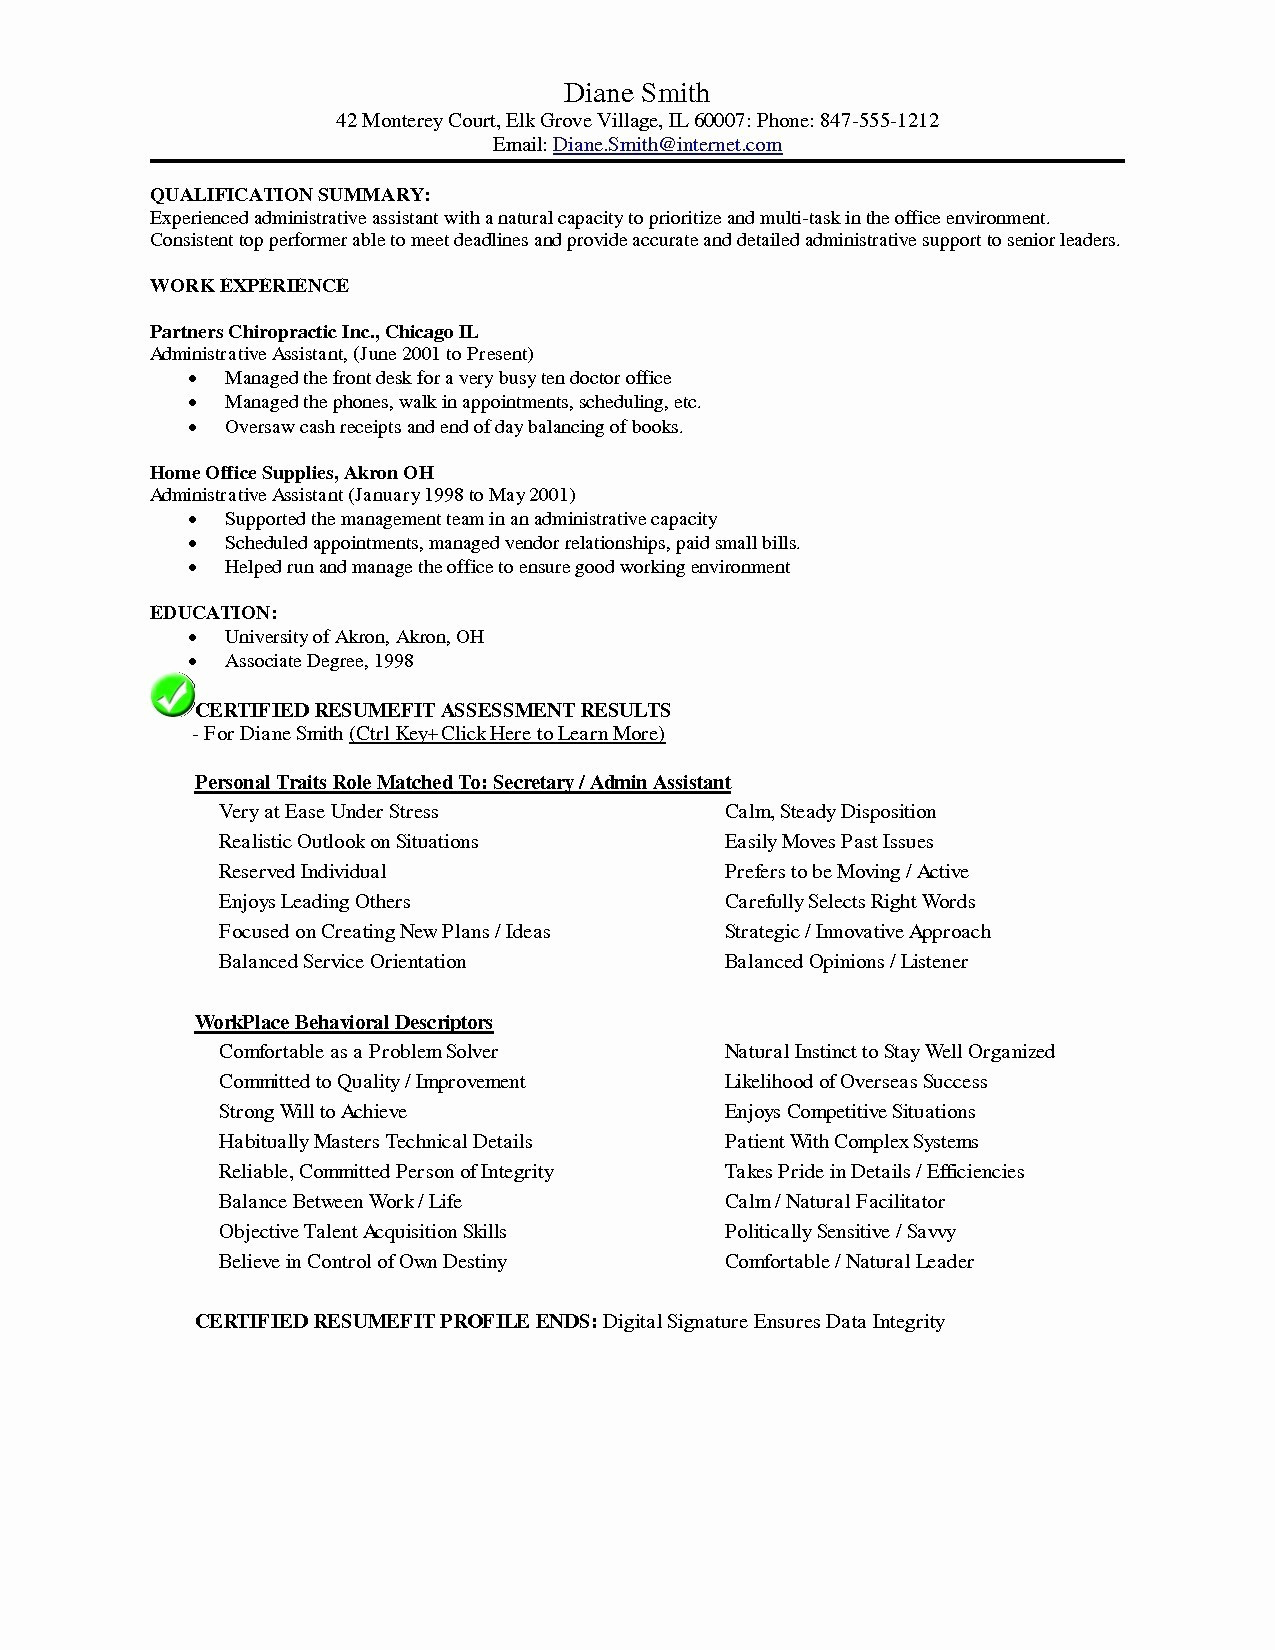 Office Job Resume - New Resume Samples for Administrative assistant